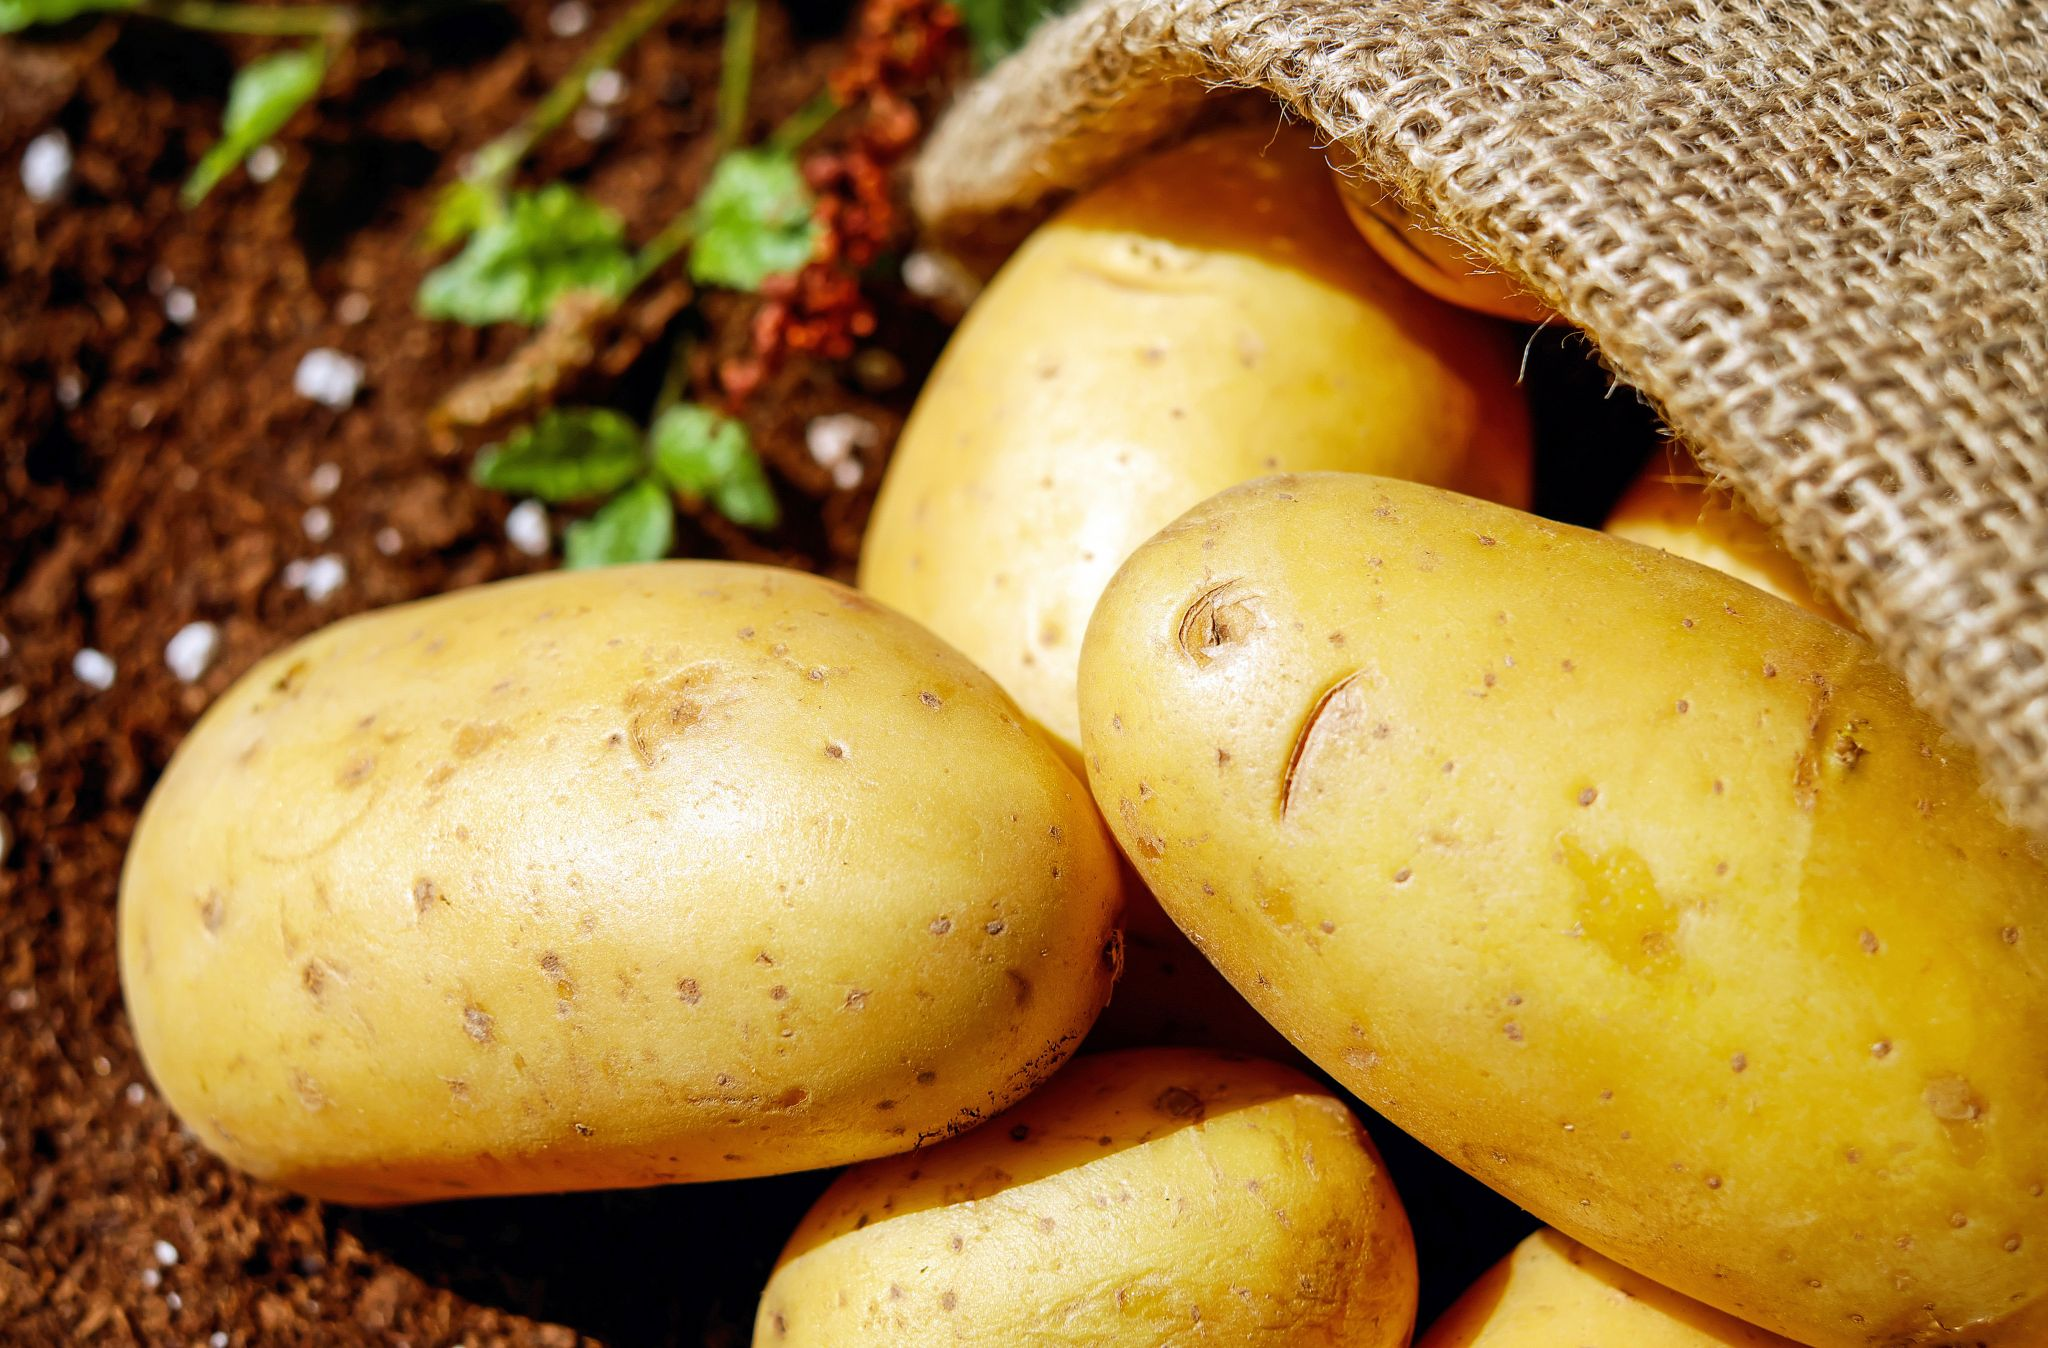 Newly picked potatoes in a bag